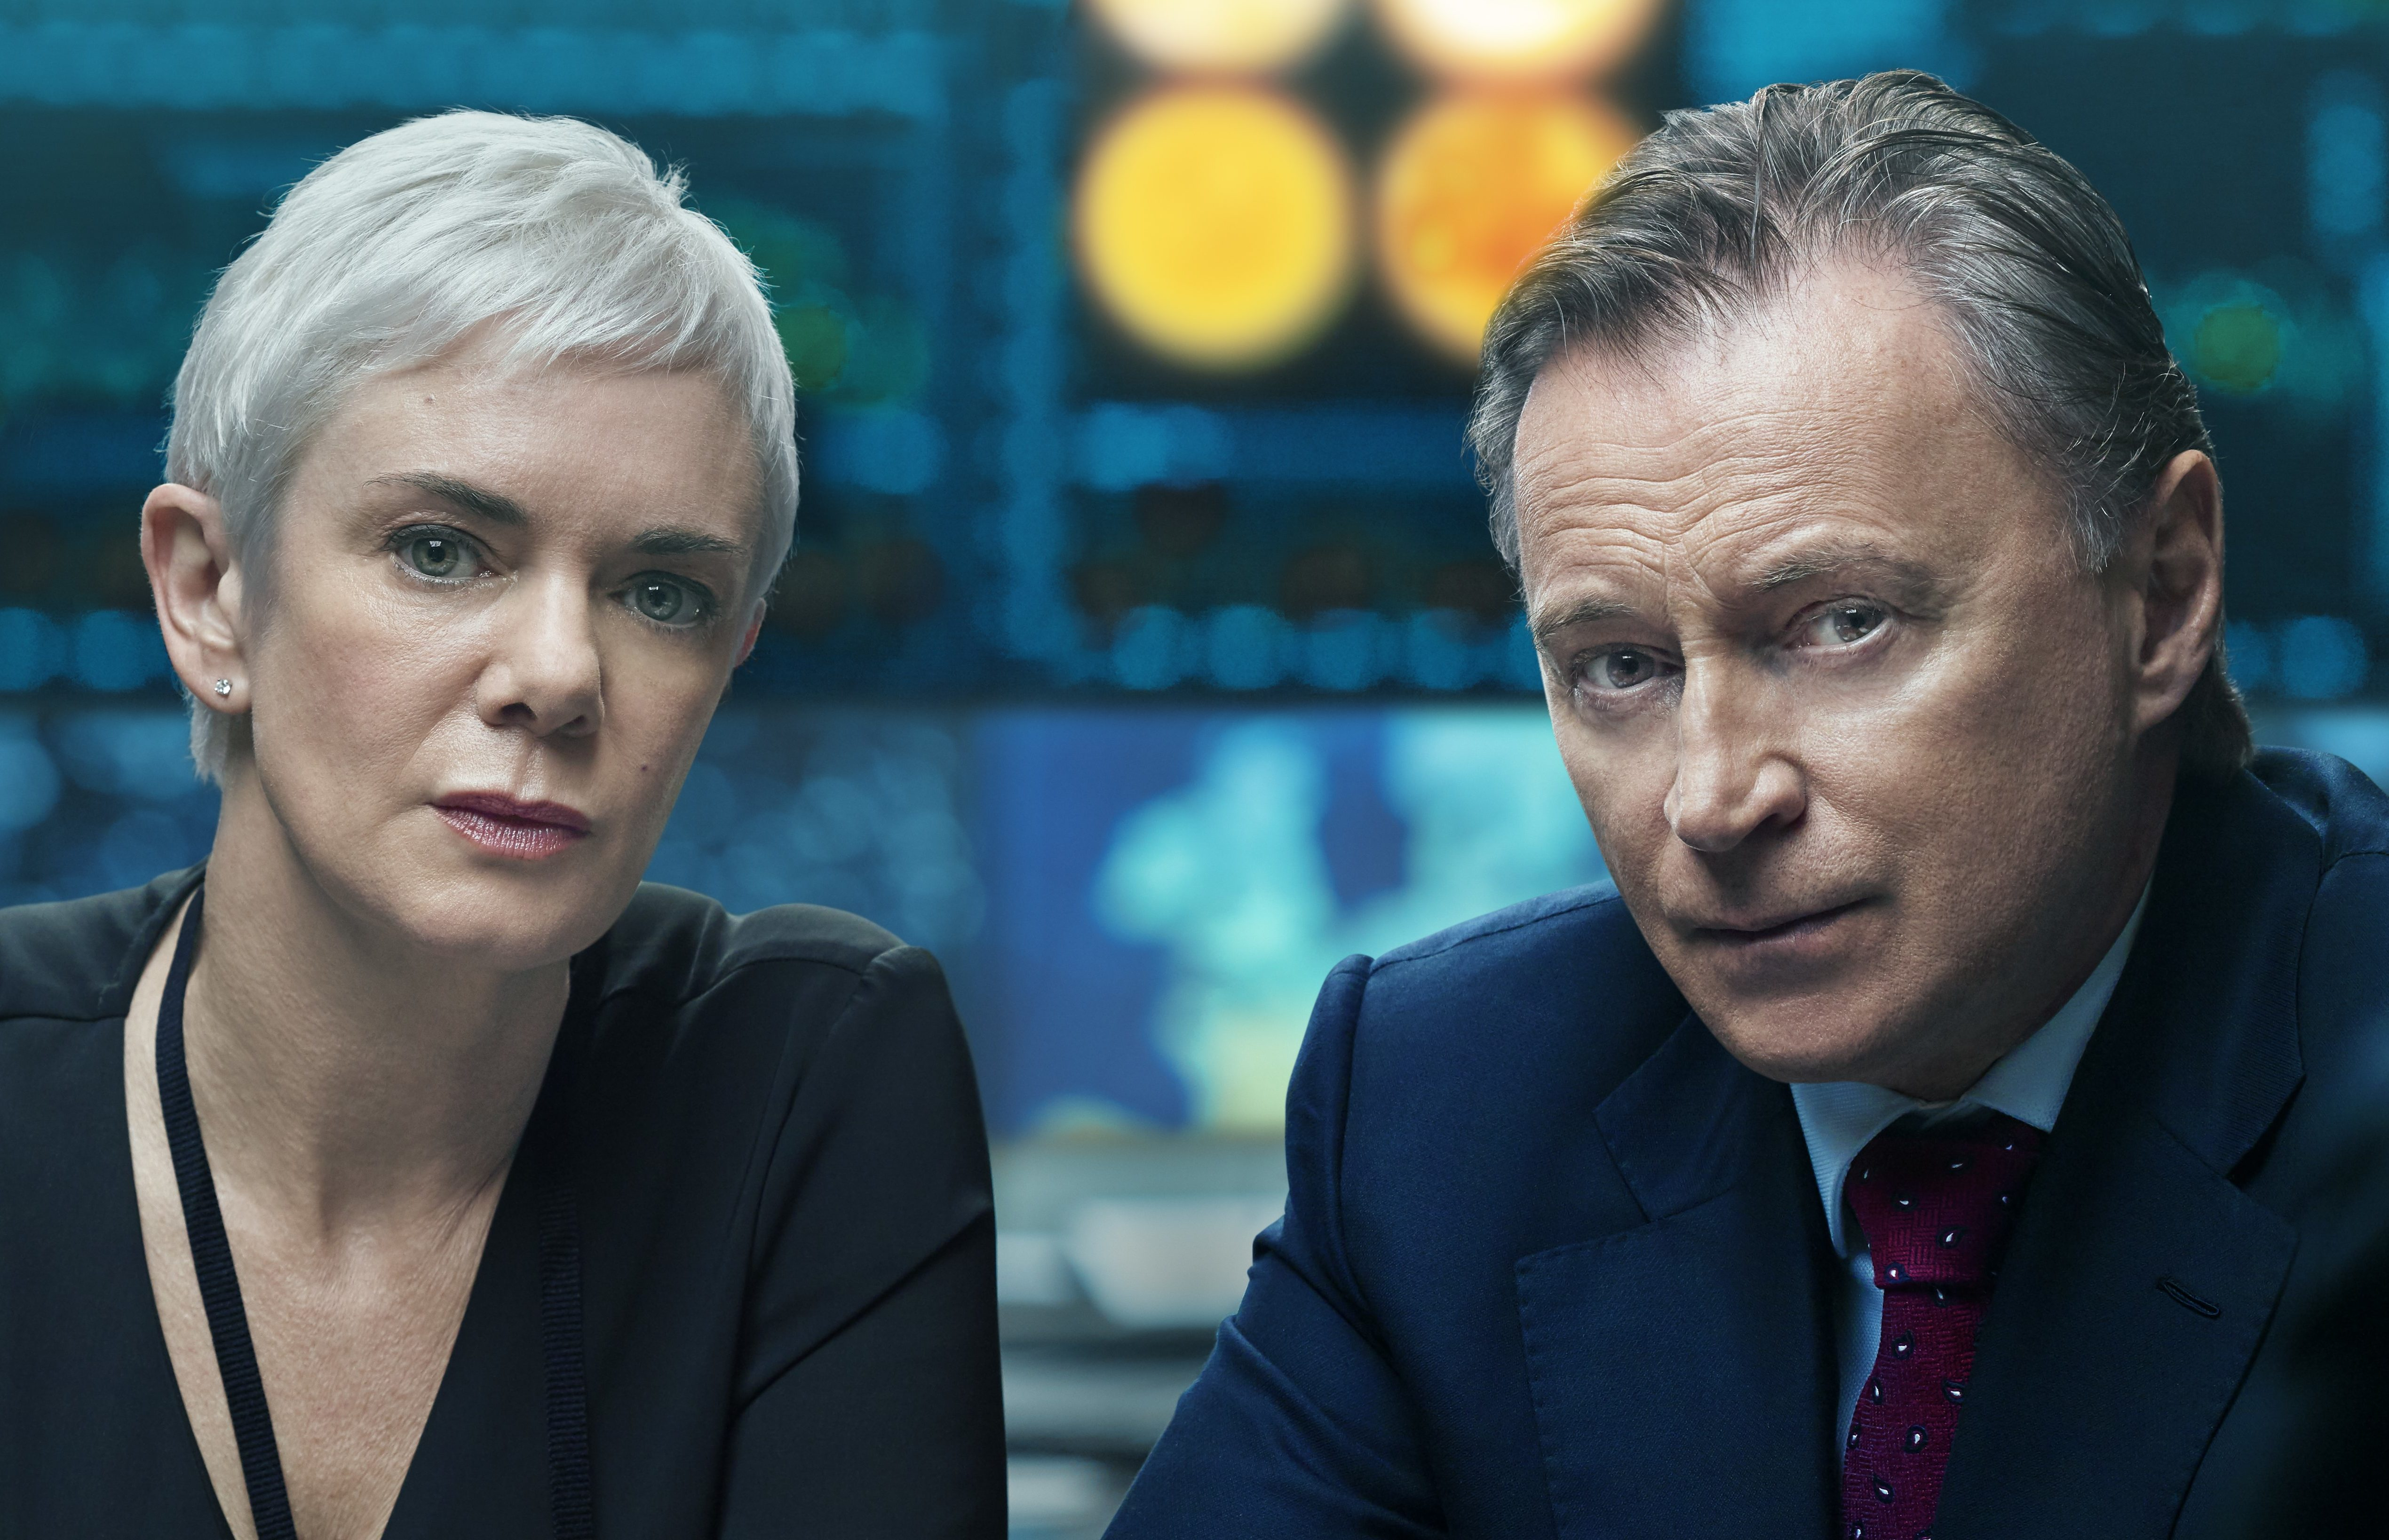 Robert Carlyle as the Prime Minister and Victoria Hamilton as his Chief of Staff in Cobra